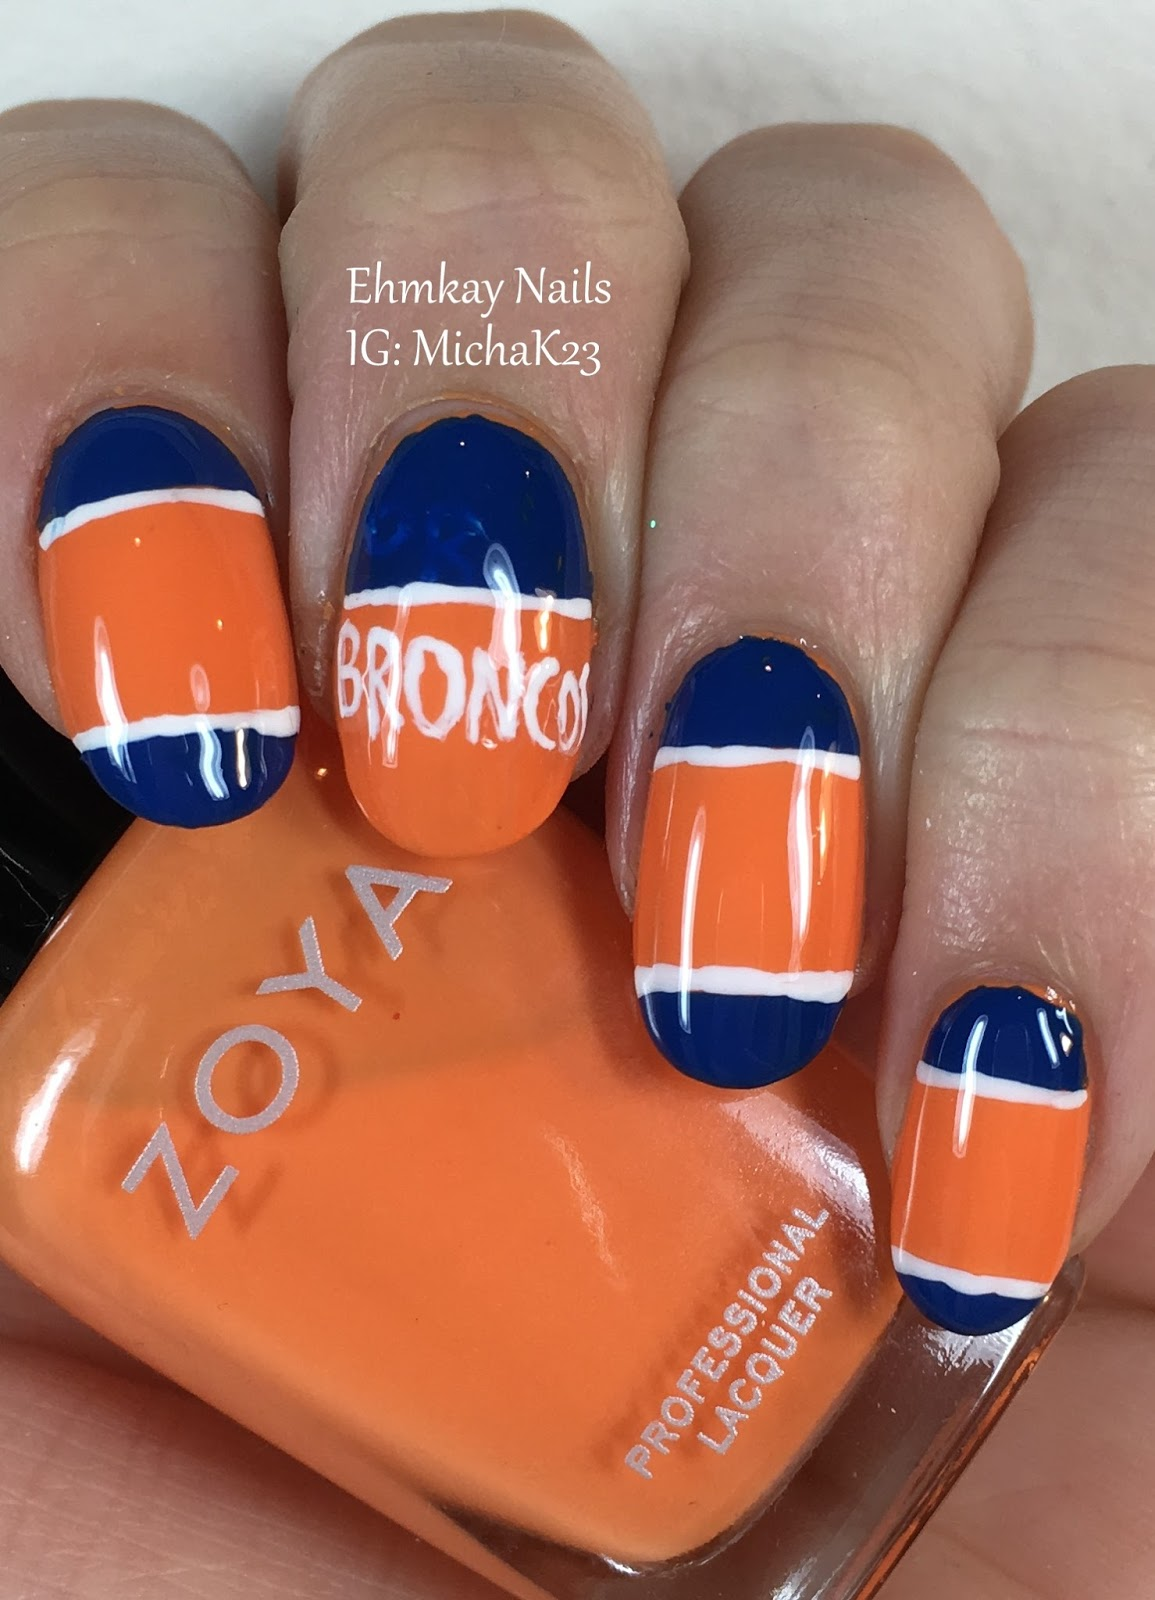 Ehmkay nails super bowl nail art denver broncos nail art with denver broncos nail art with zoya nail polish prinsesfo Gallery